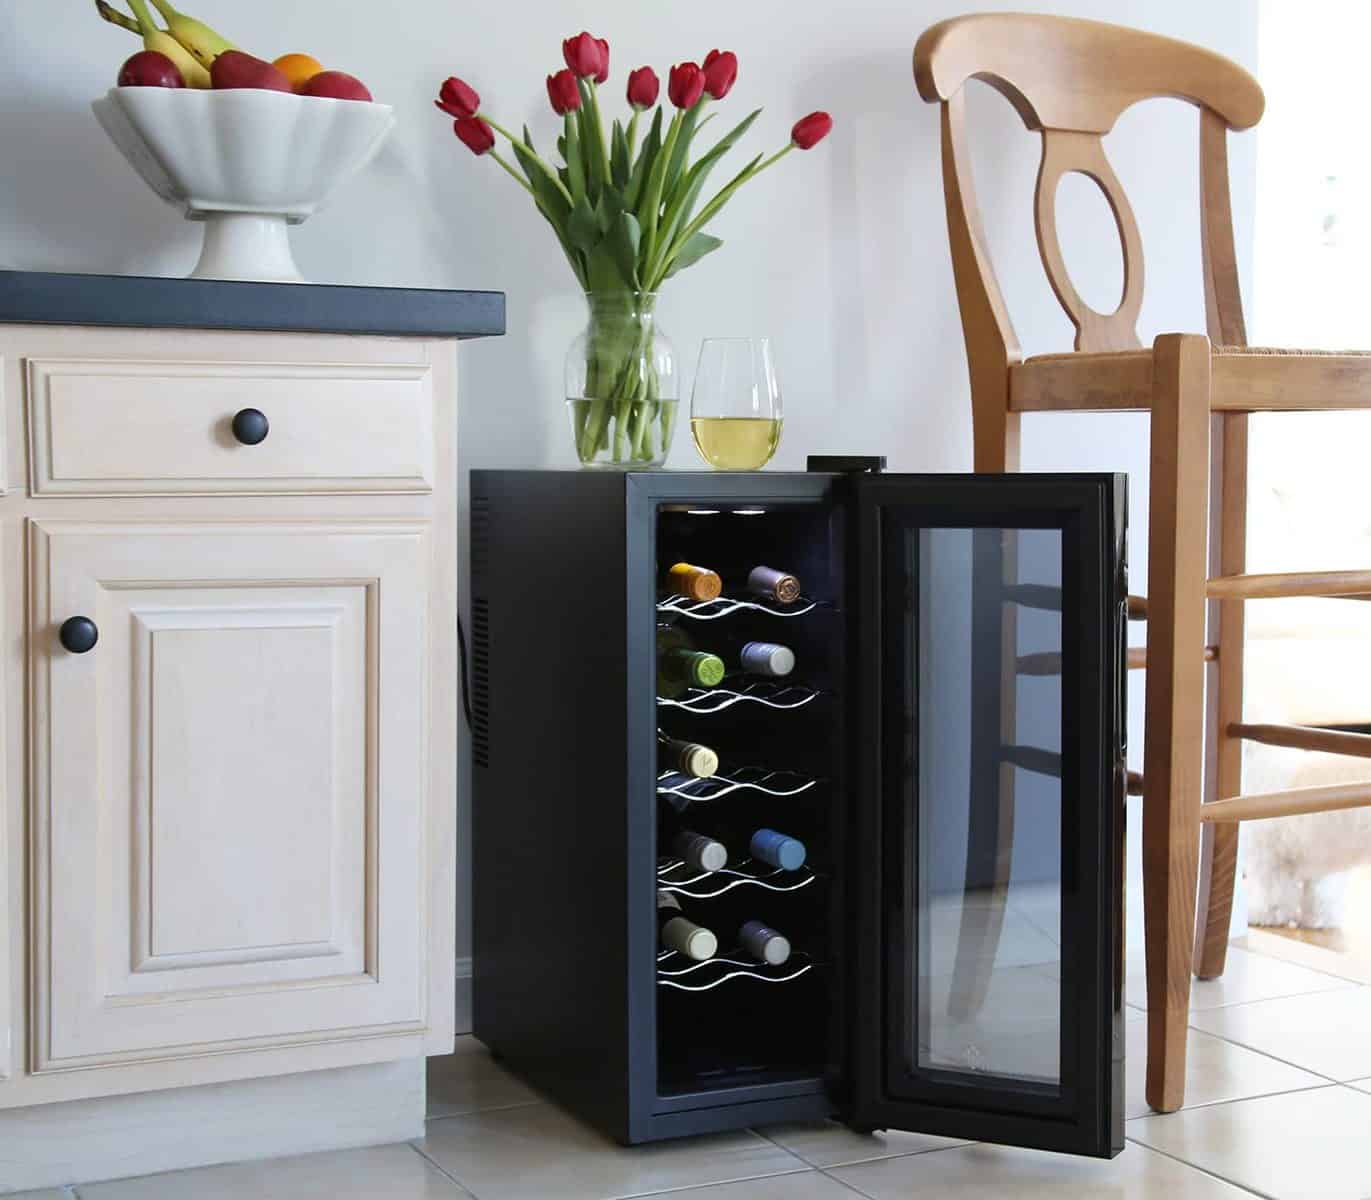 Ivation 12 Bottle Thermoelectric Red and White Wine Cooler